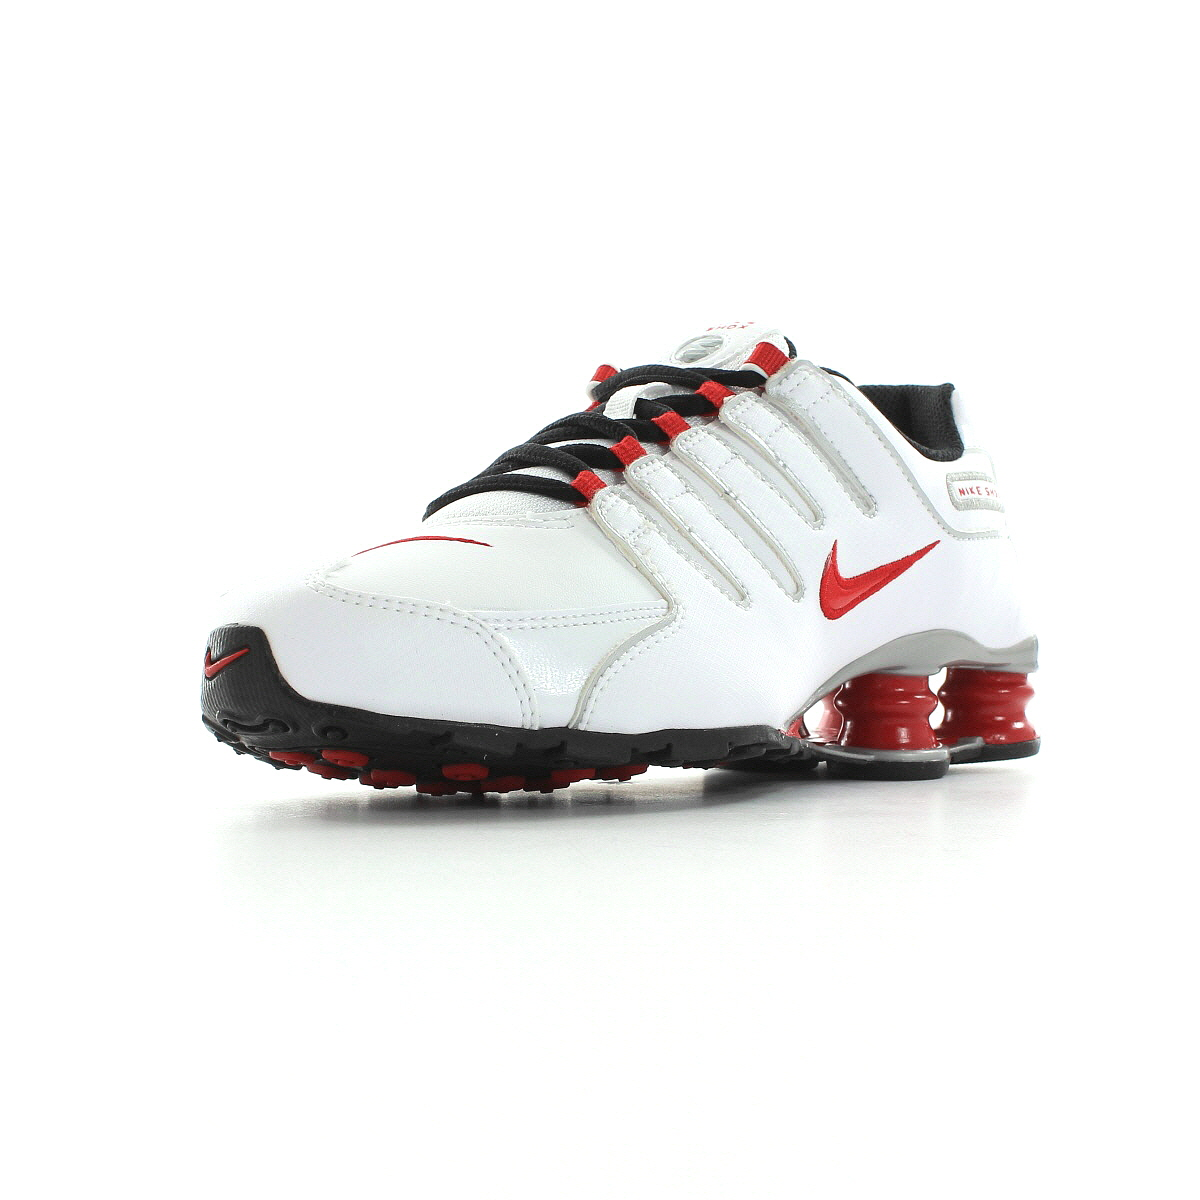 nike air max dolce - nike shox chaussures tw, chaussure asics de volley ball